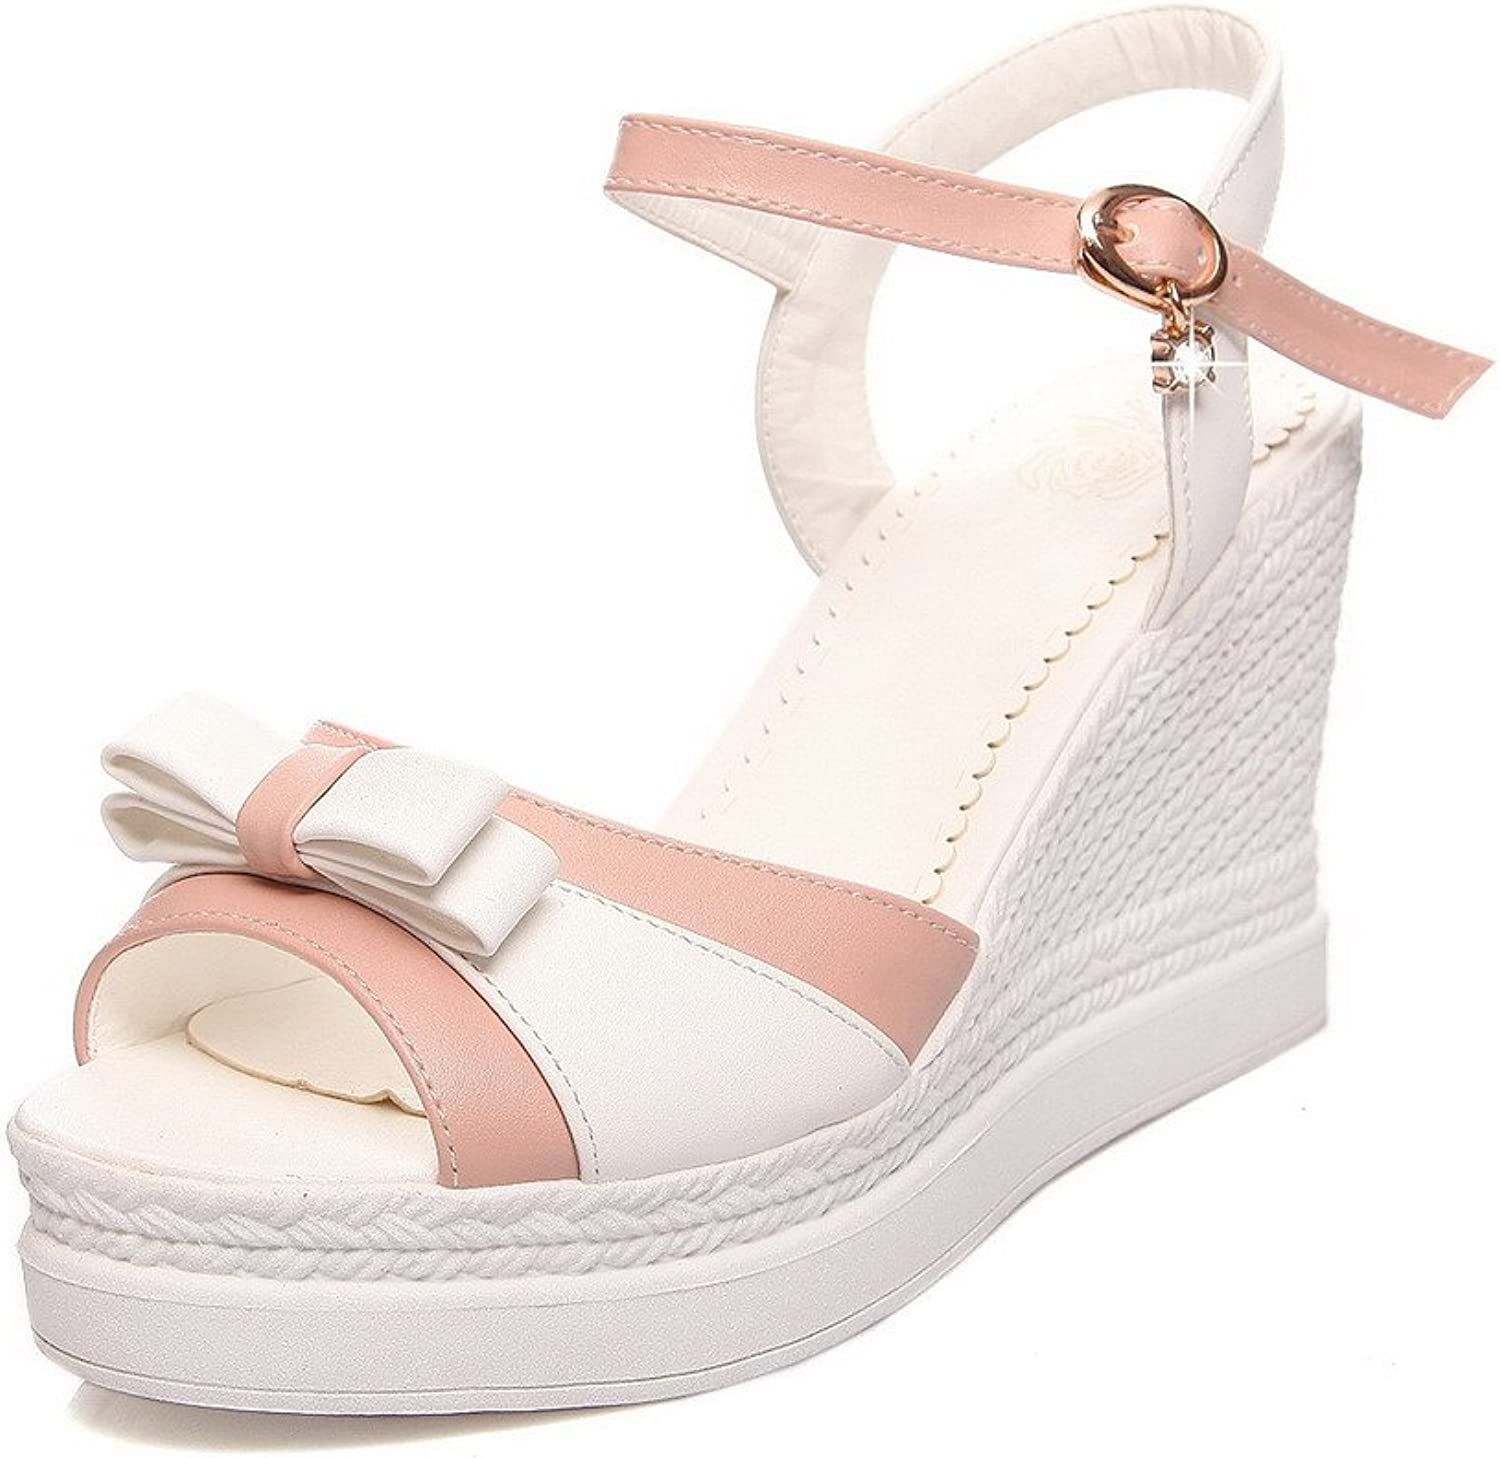 AllhqFashion Women's Pu High Heels Open Toe Assorted color Buckle Platforms & Wedges